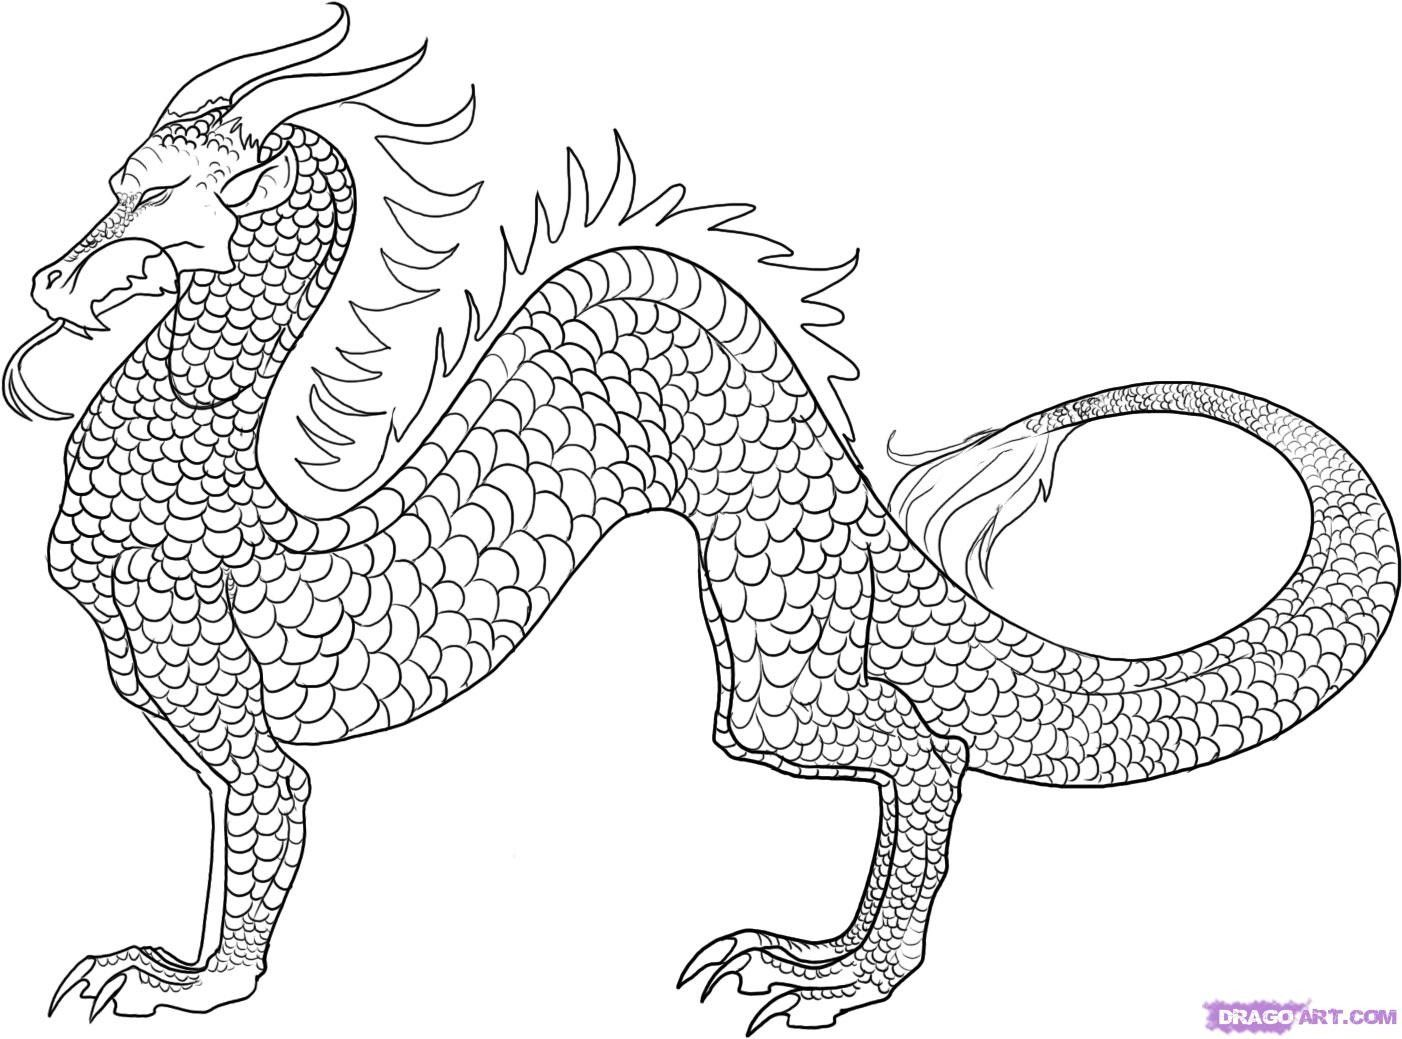 Realistic Dragon Coloring Pages Printable | Japanese Dragon Coloring ...